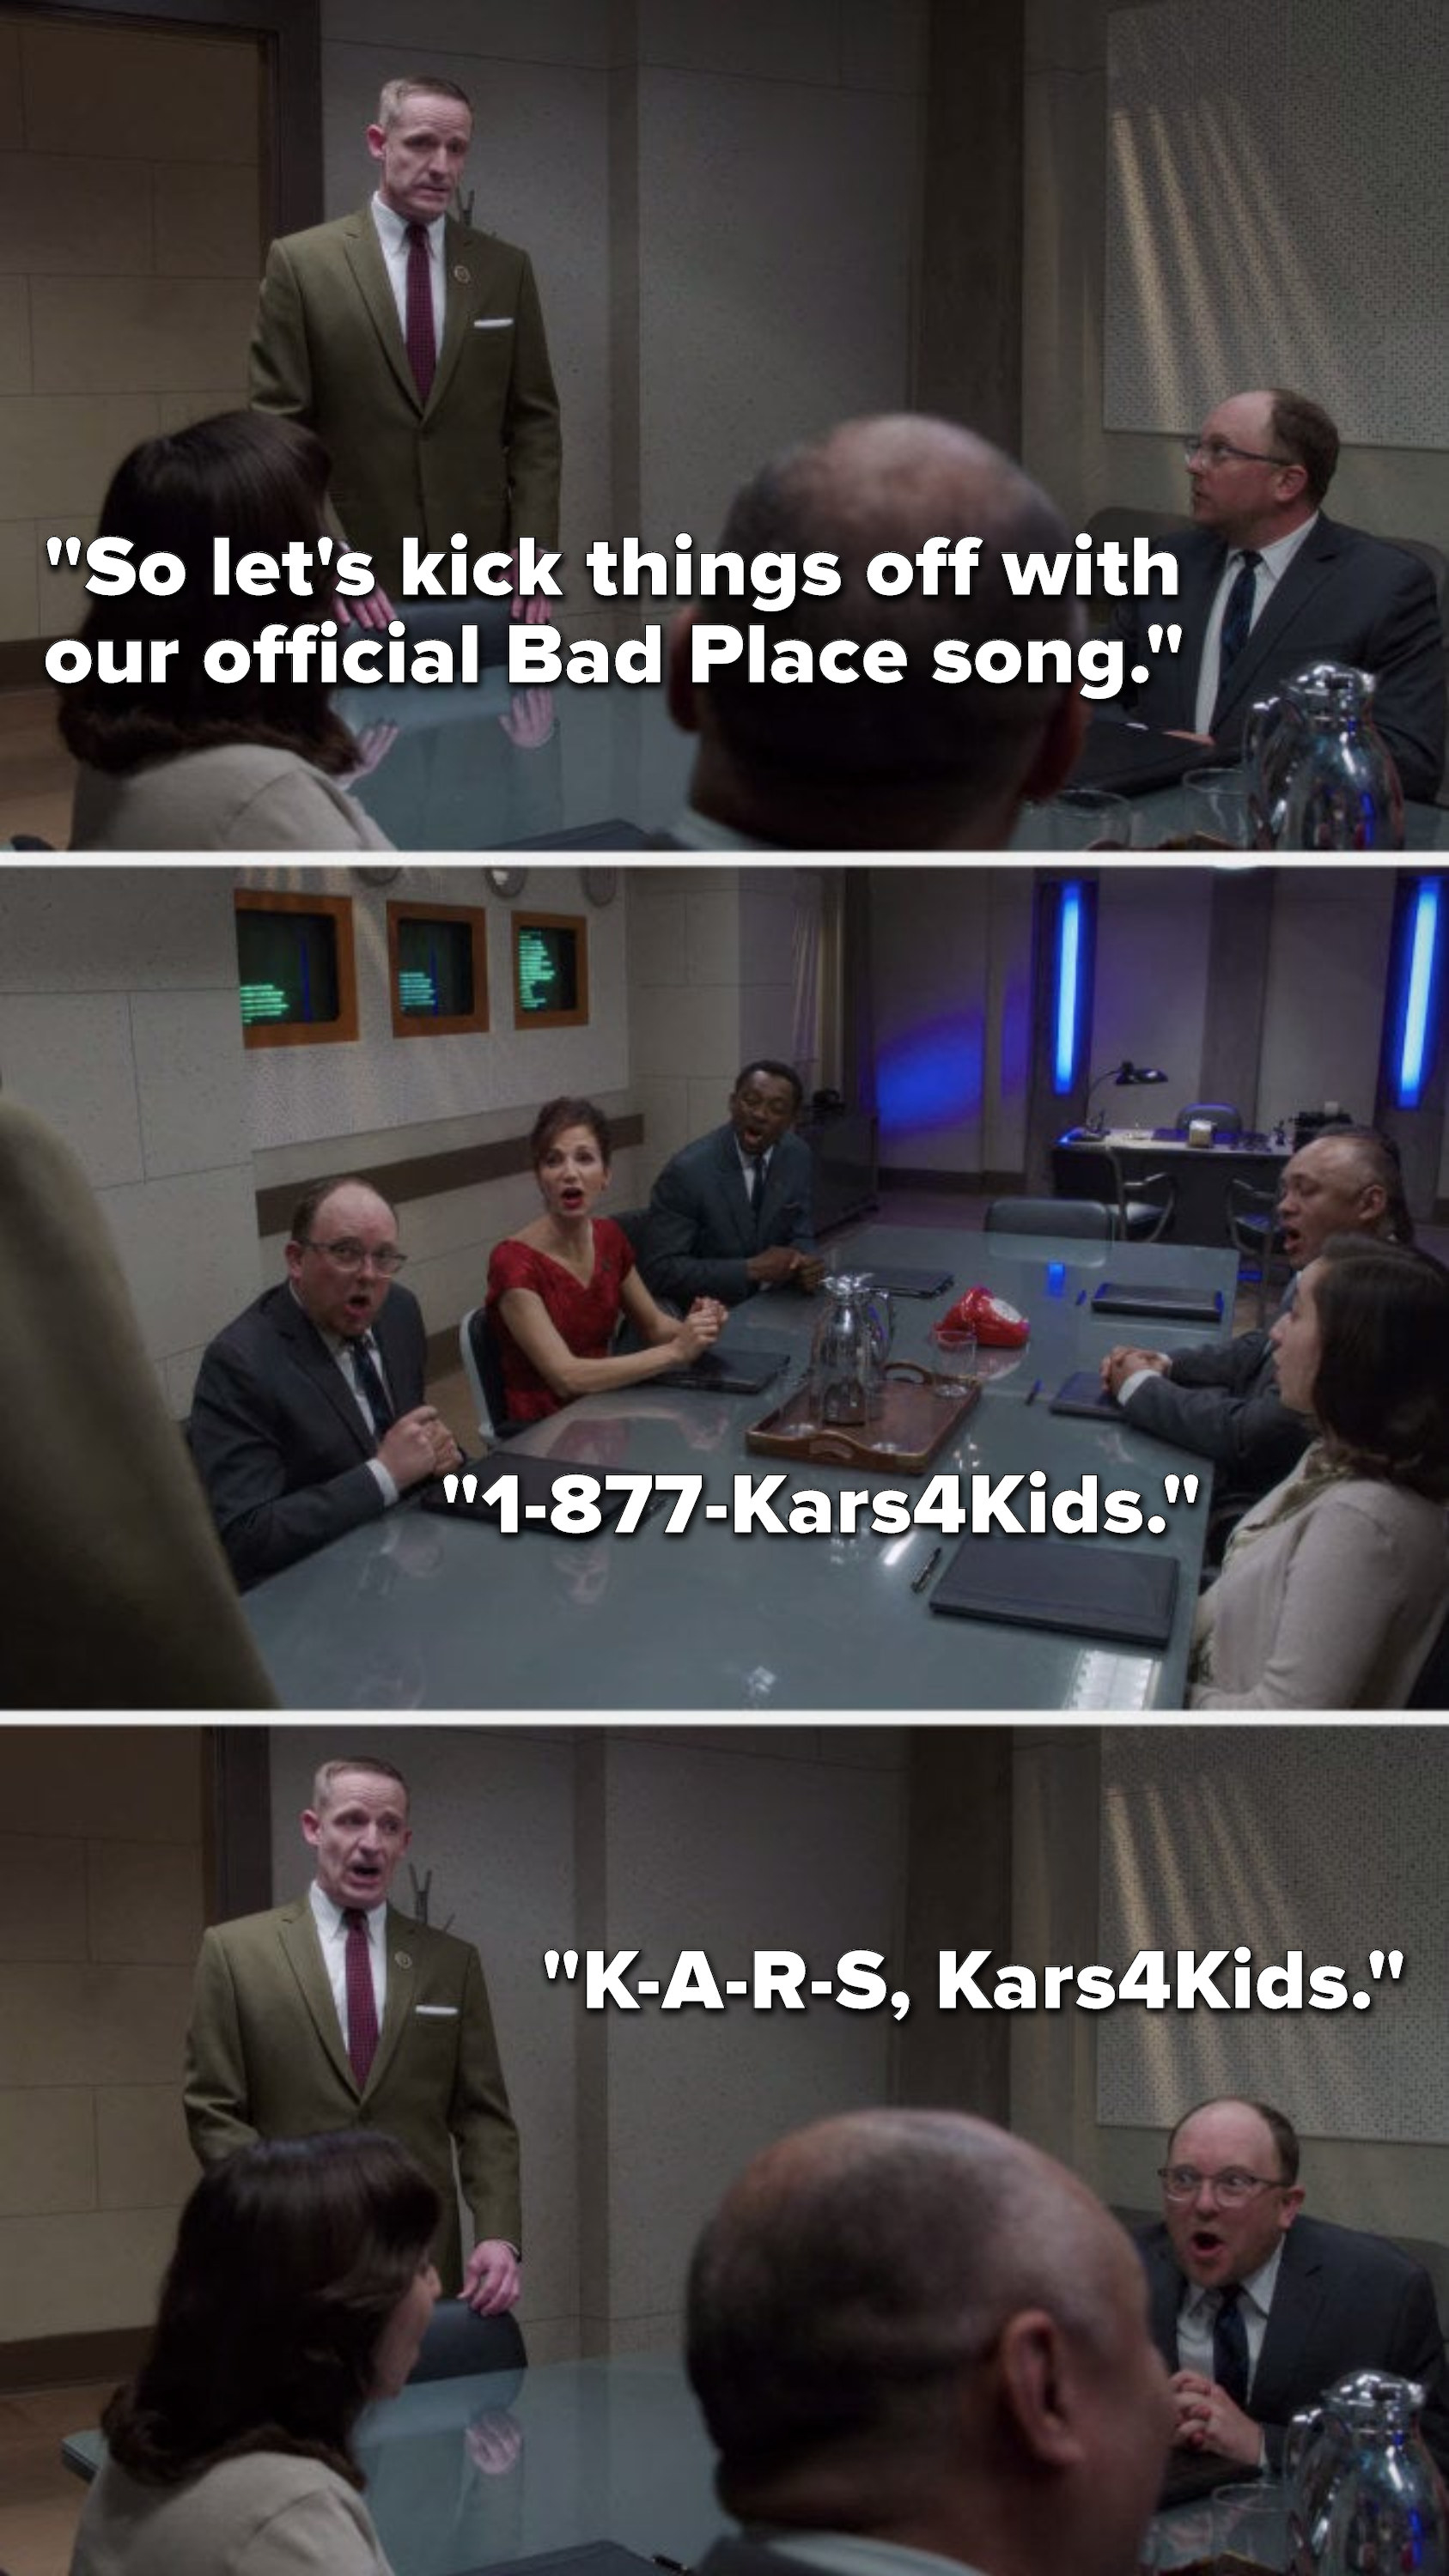 """Shawn says, """"So let's kick things off with our official Bad Place song,"""" and Shawn and all of the demons sing, """"1-877-Kars4Kids, K-A-R-S Kars4Kids"""""""